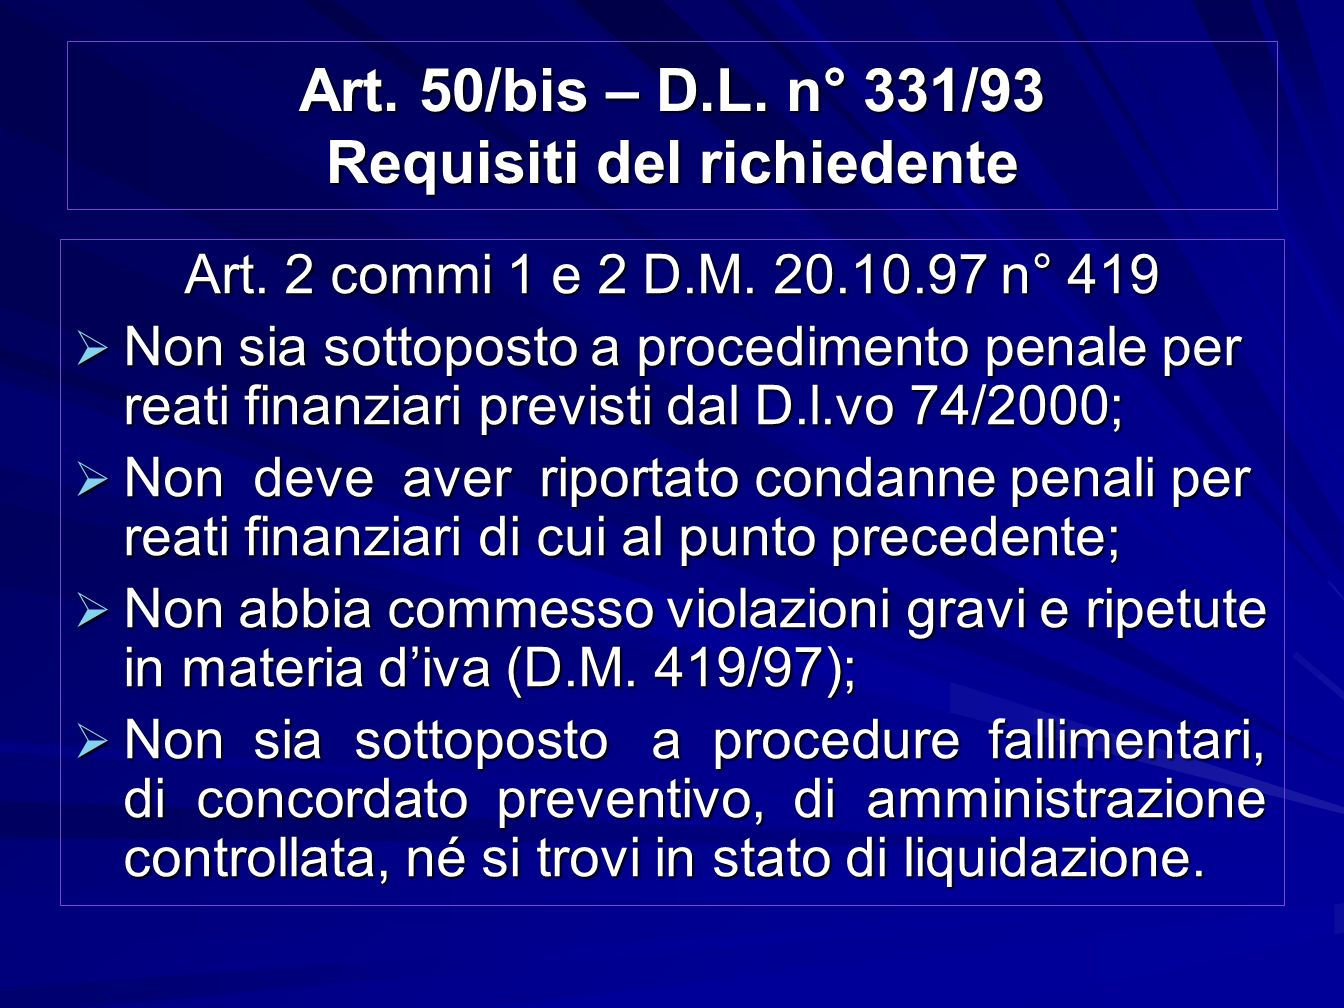 Art. 50/bis – D.L. n° 331/93 Requisiti del richiedente